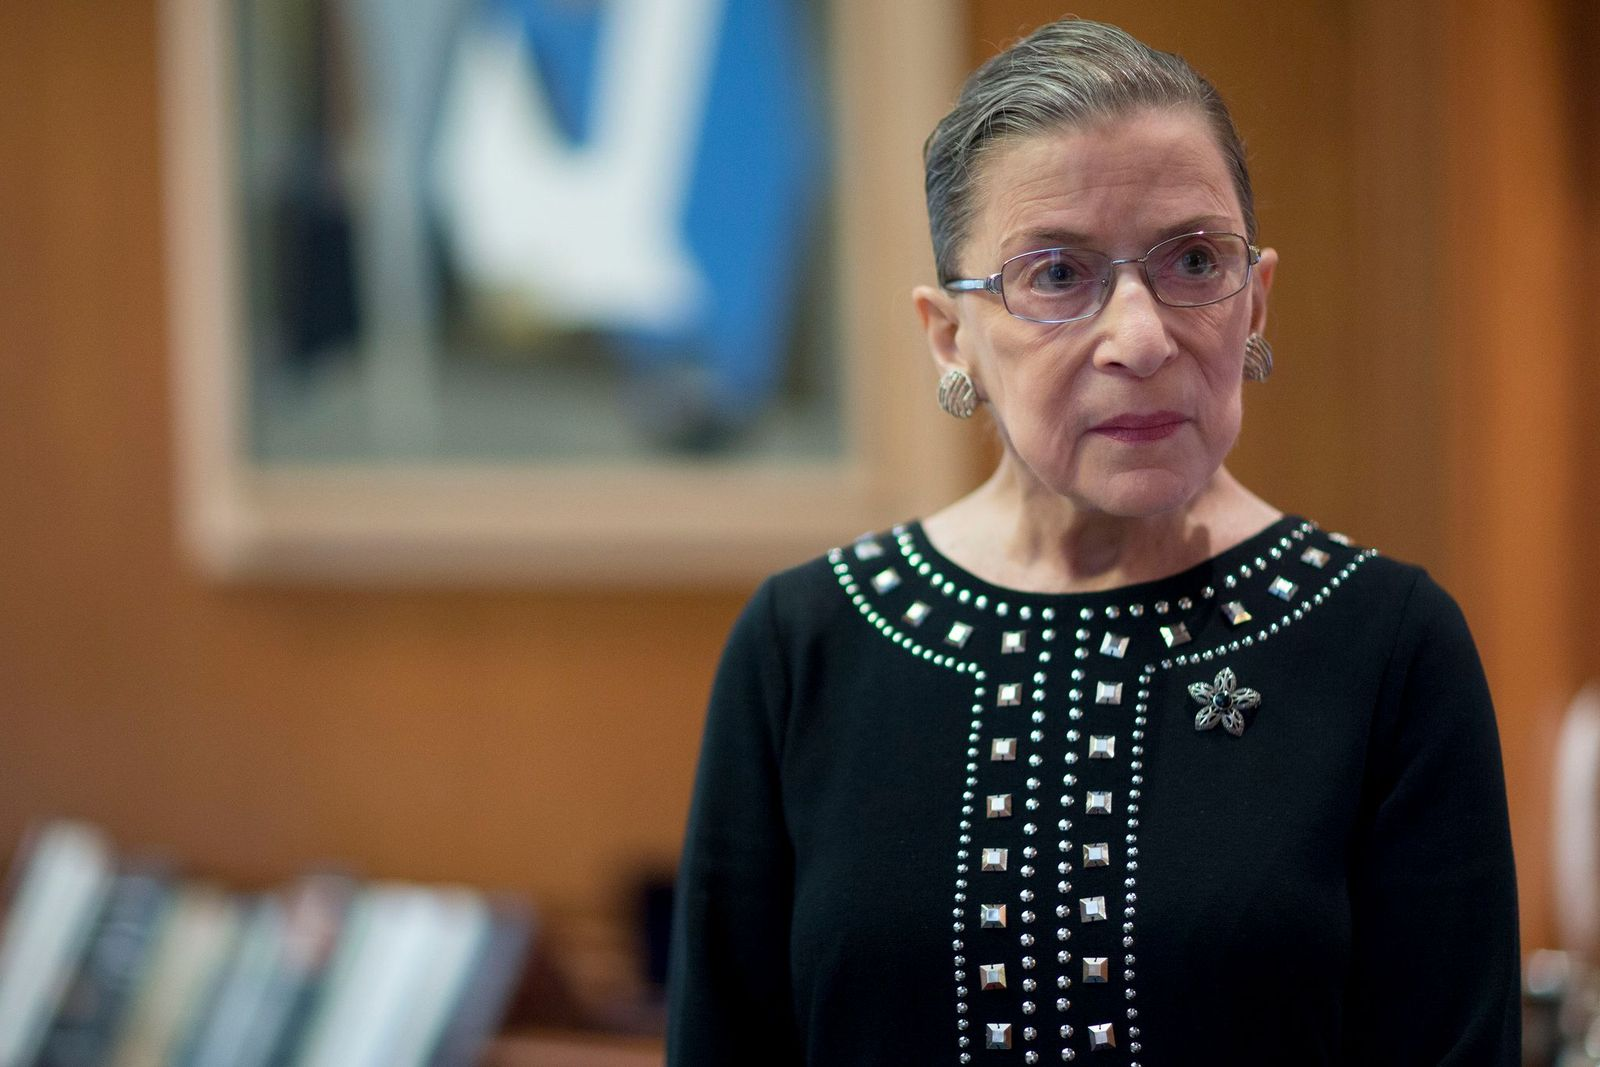 Ruth Bader Ginsburg in her chambers after an interview in Washington, D.C. on August 23, 2013 | Photo: Andrew Harrer/Bloomberg/Getty Images